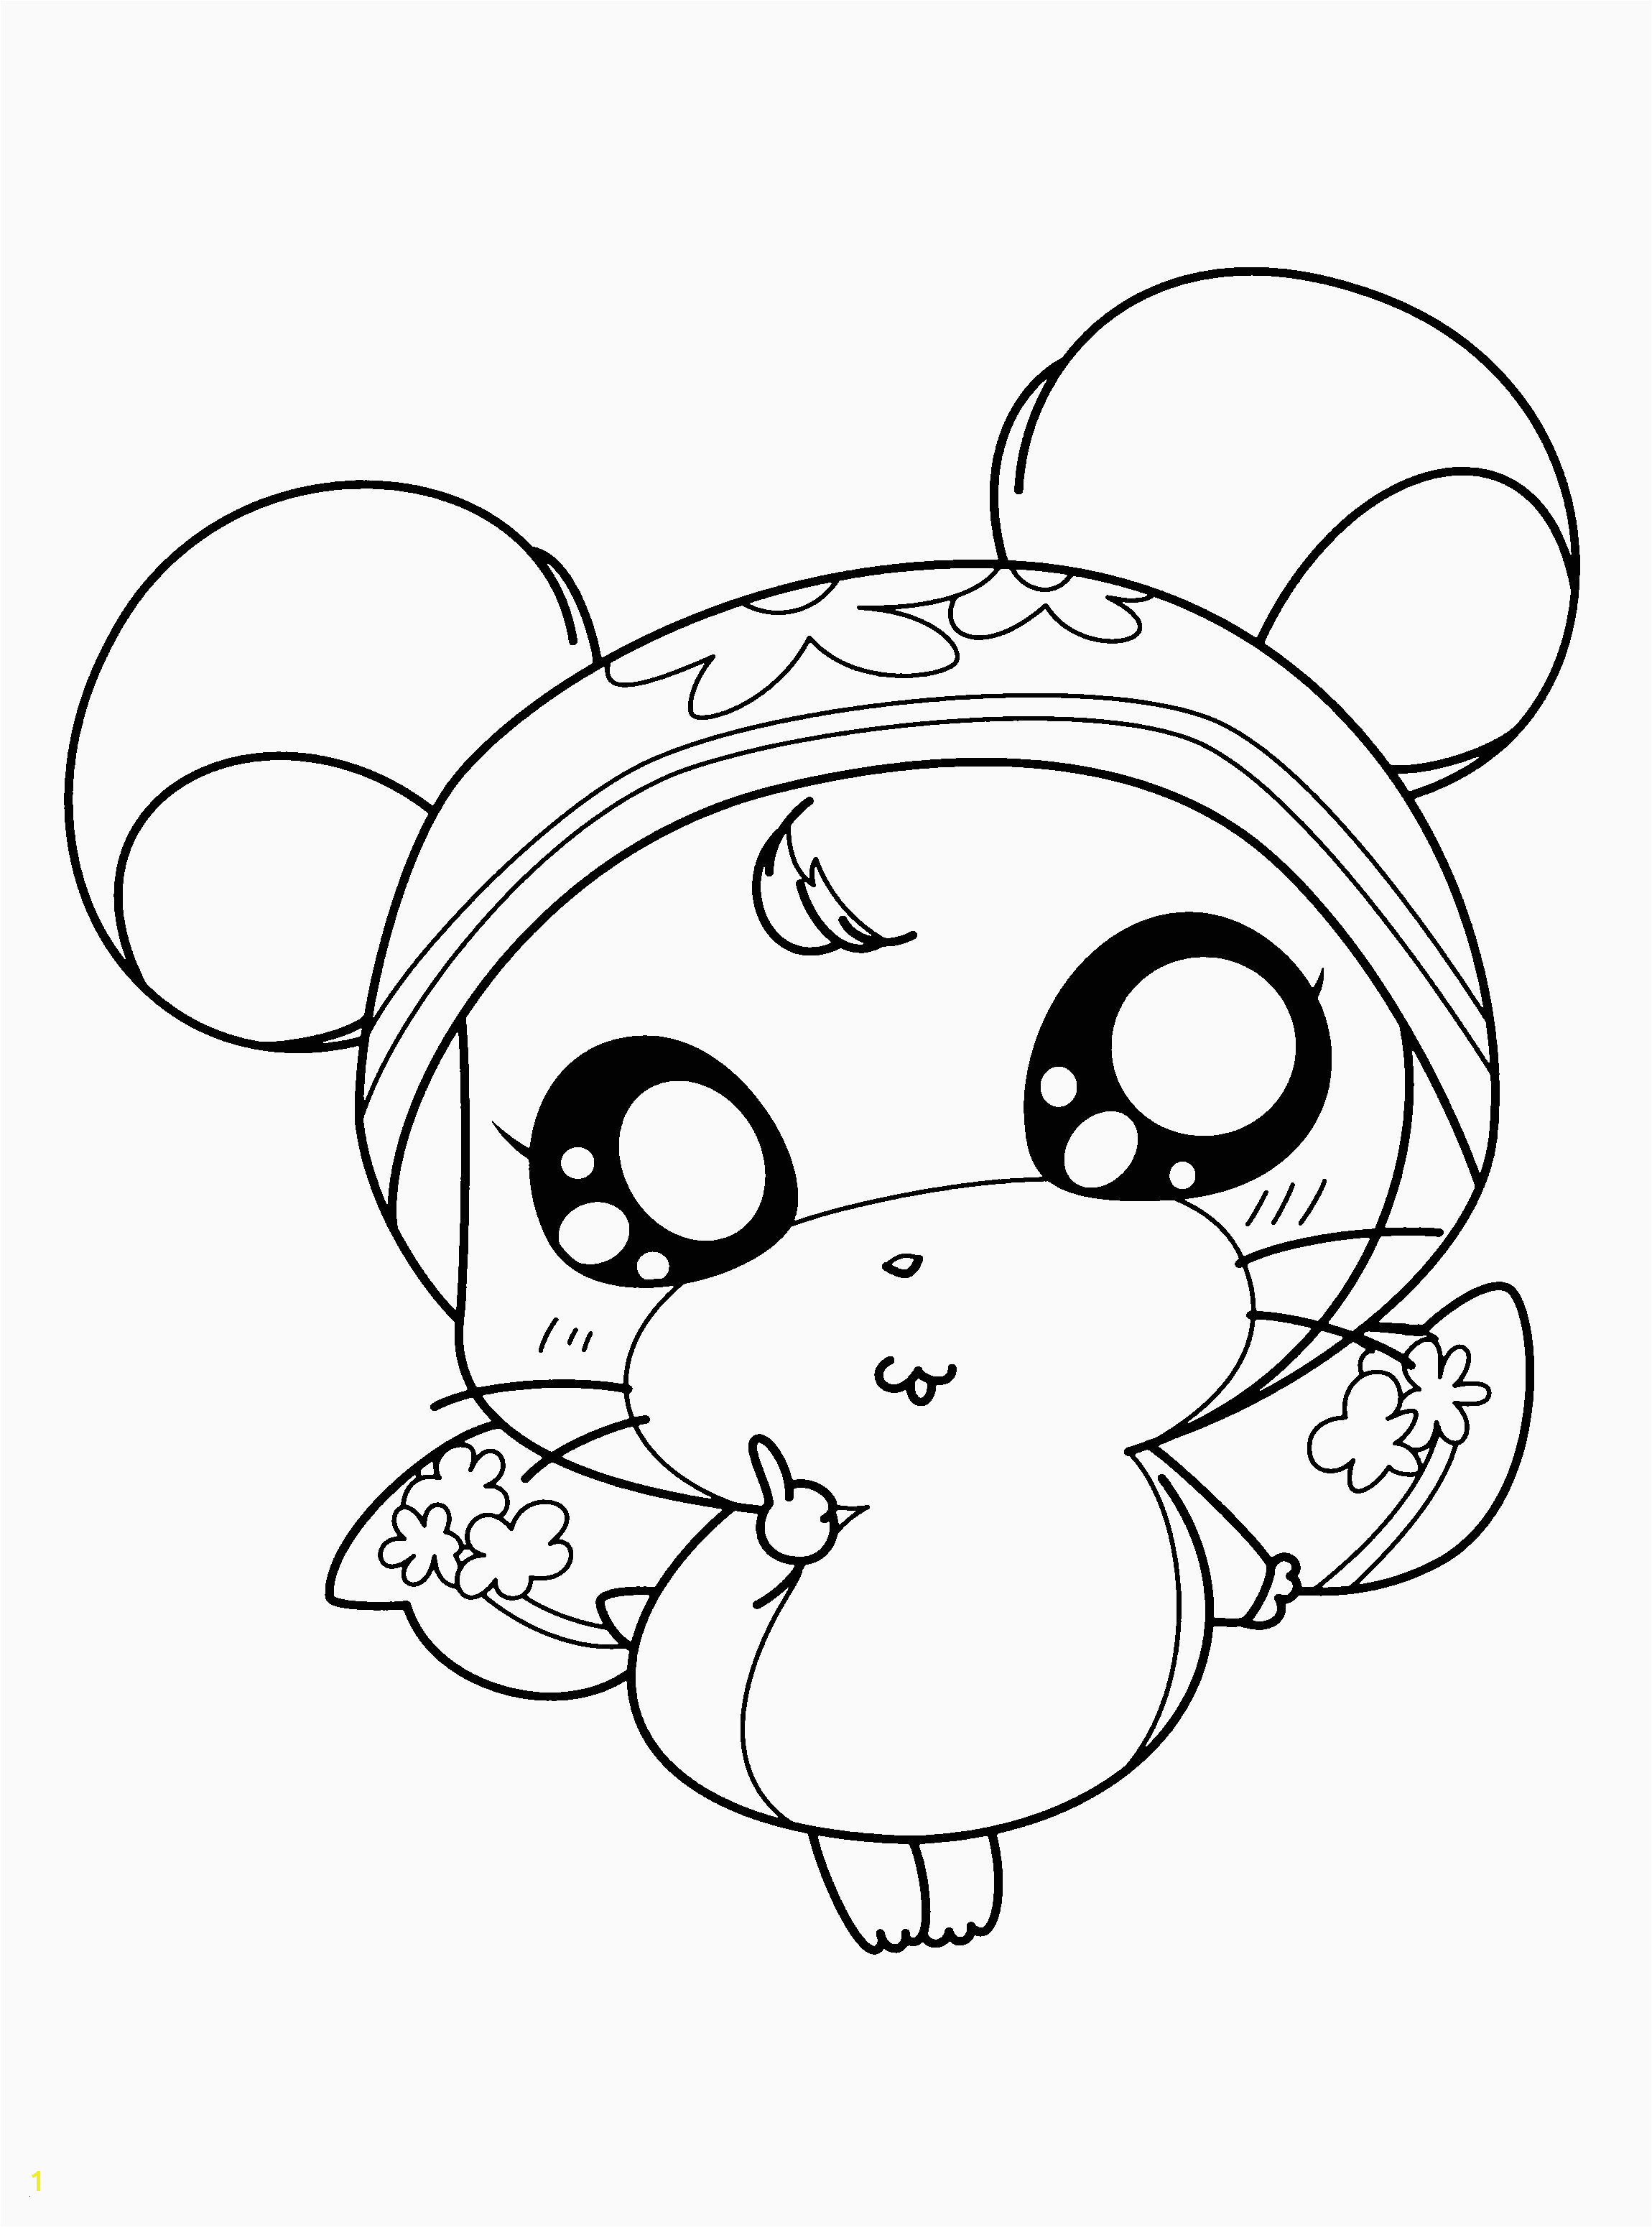 Dress Coloring Pages Pumpkins Coloring Sheet Lovely Coloring Pages for Girls Lovely Printable Cds 0d